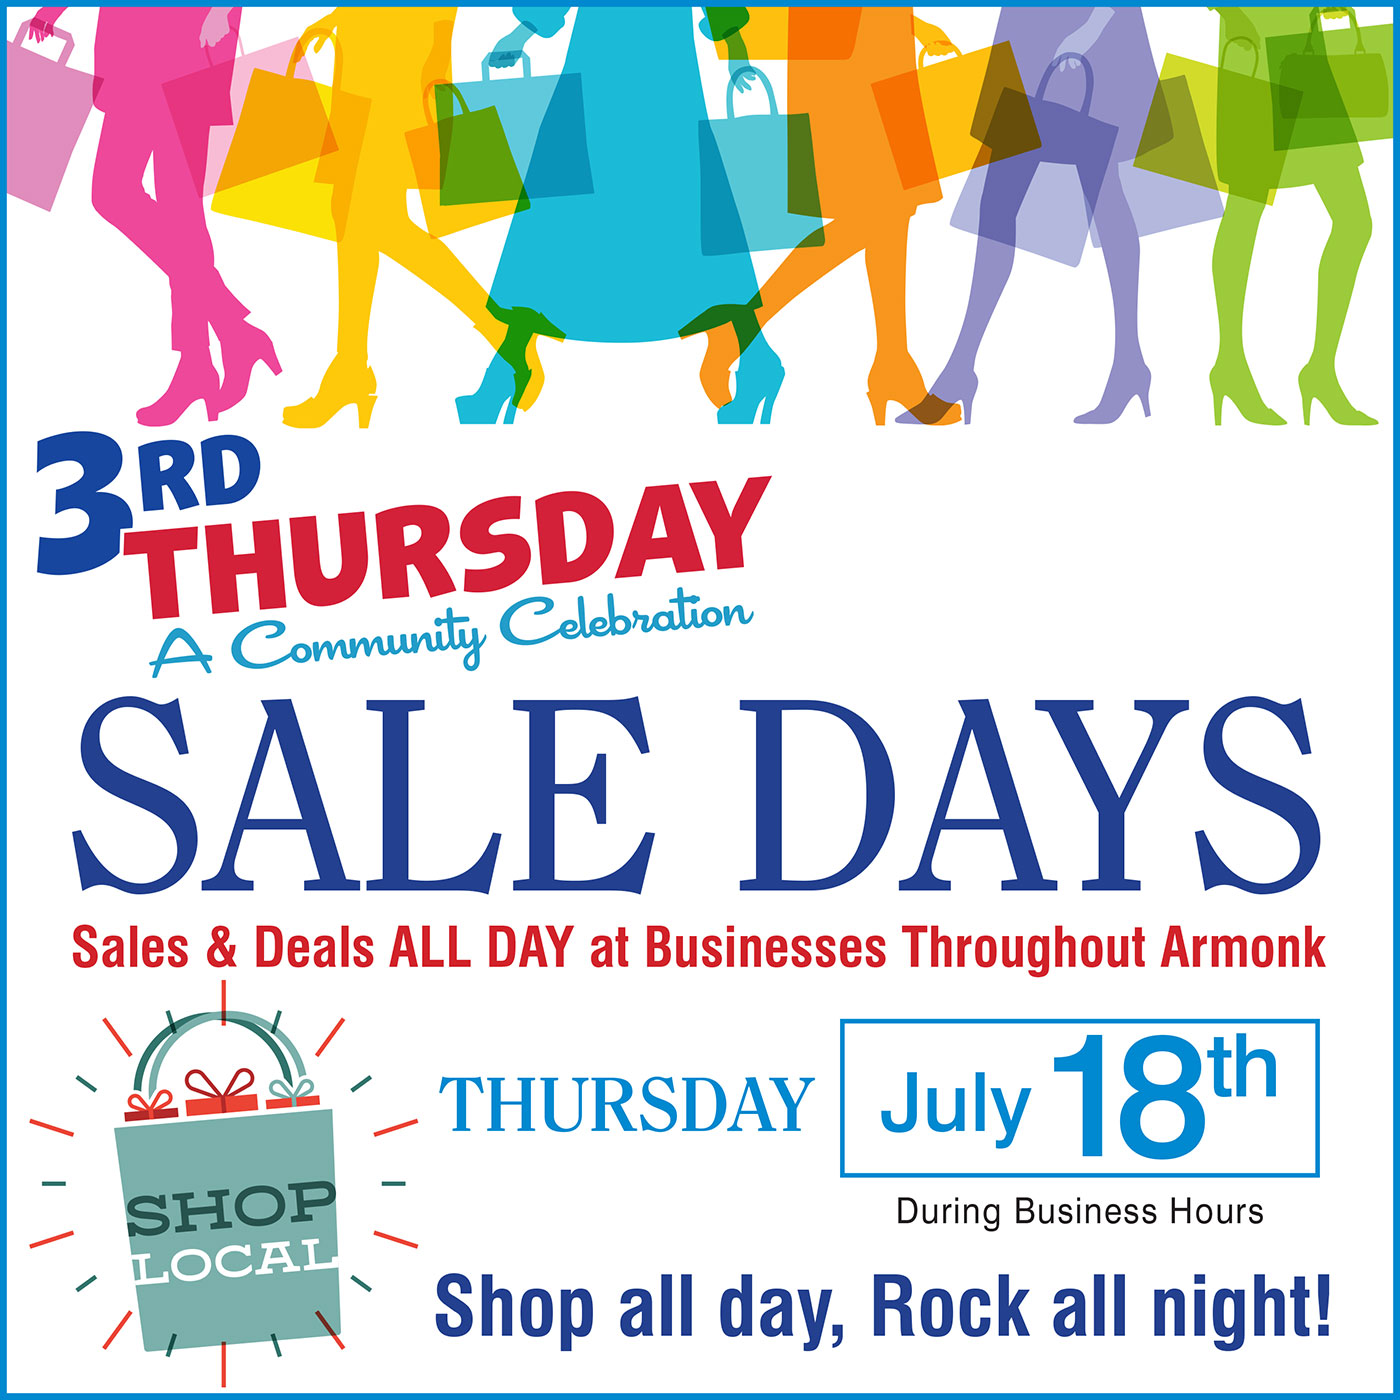 Third Thursday In Armonk Note Rain Date Plans Changes